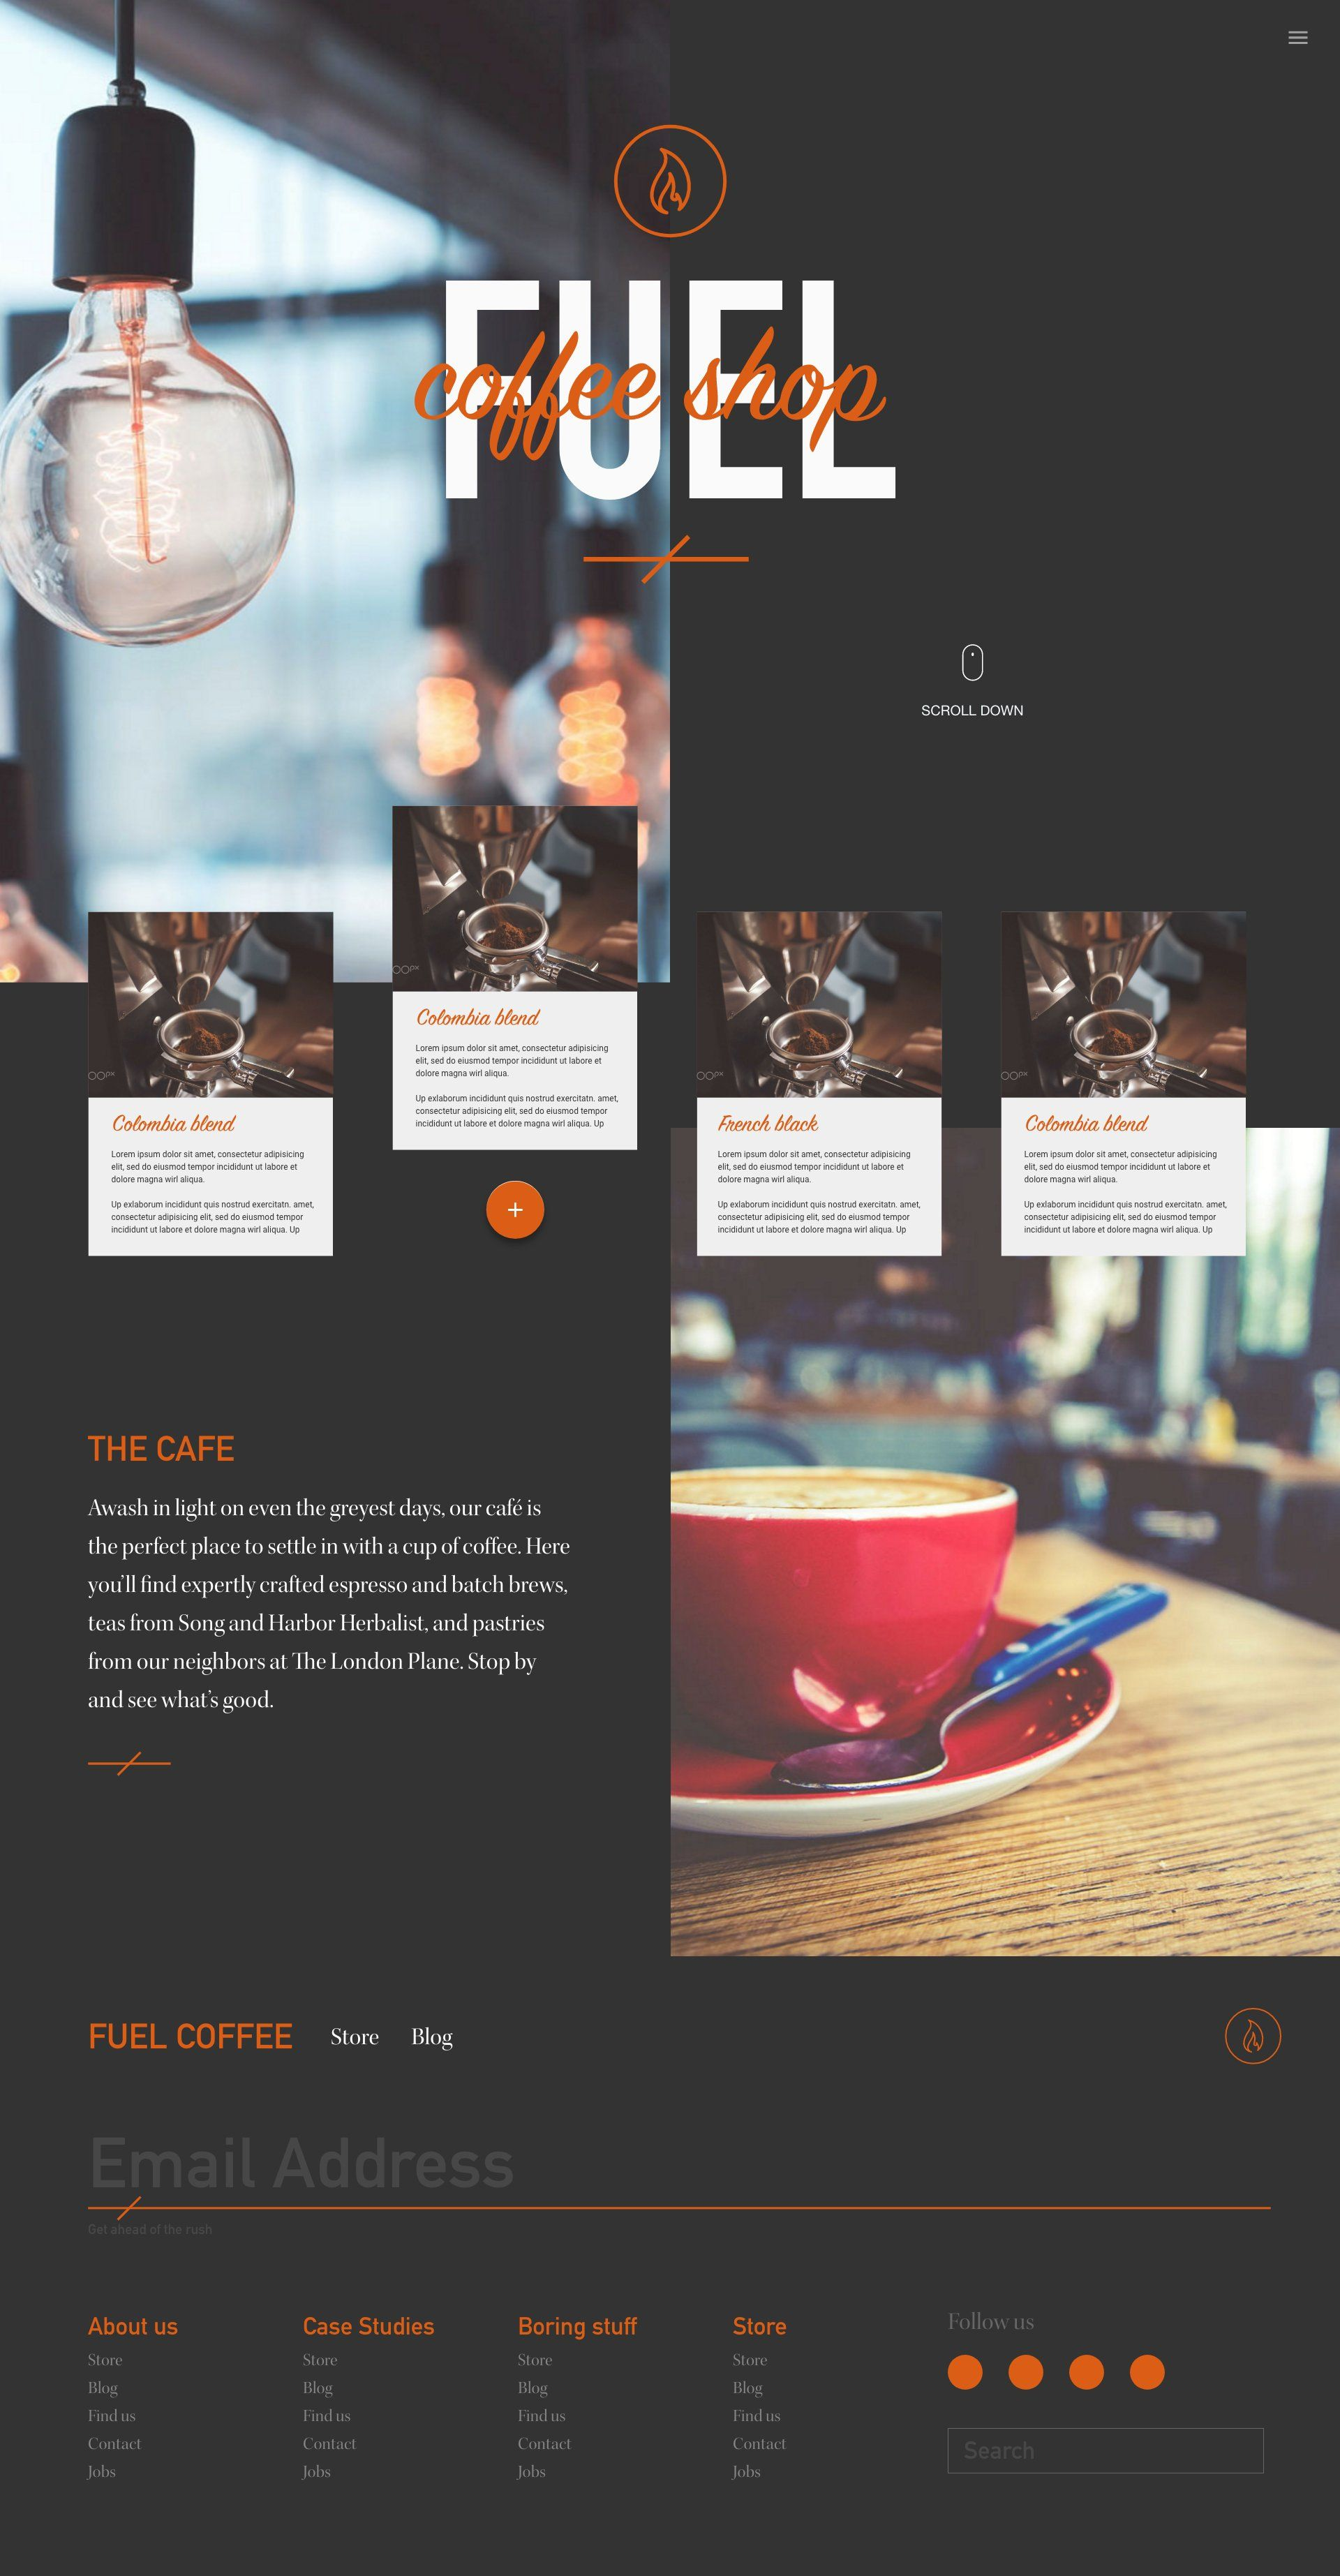 Coffee Shop Site Template In 2020 Cafe Website Design Restaurant Website Design Coffee Site